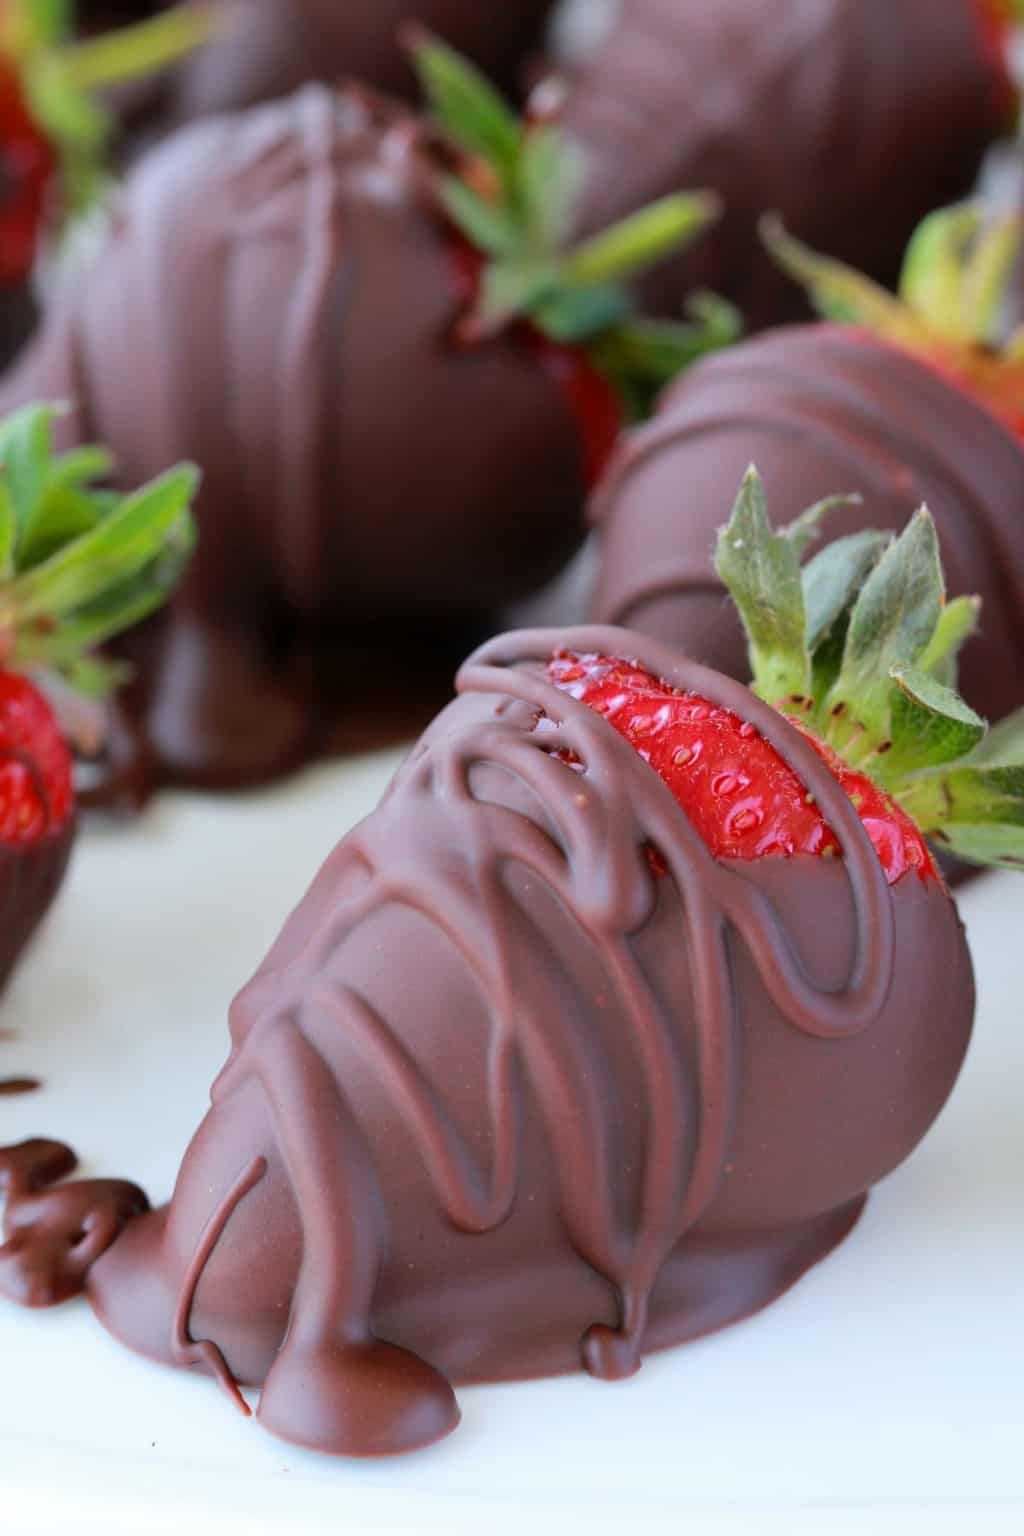 Juicy and delicious vegan chocolate covered strawberries. This romantic dessert is wonderfully flavorful with the perfect contrast between juicy strawberries and rich chocolate! #vegan #lovingitvegan #dessert #romantic #chocolate #dairyfree #glutenfree | lovingitvegan.com